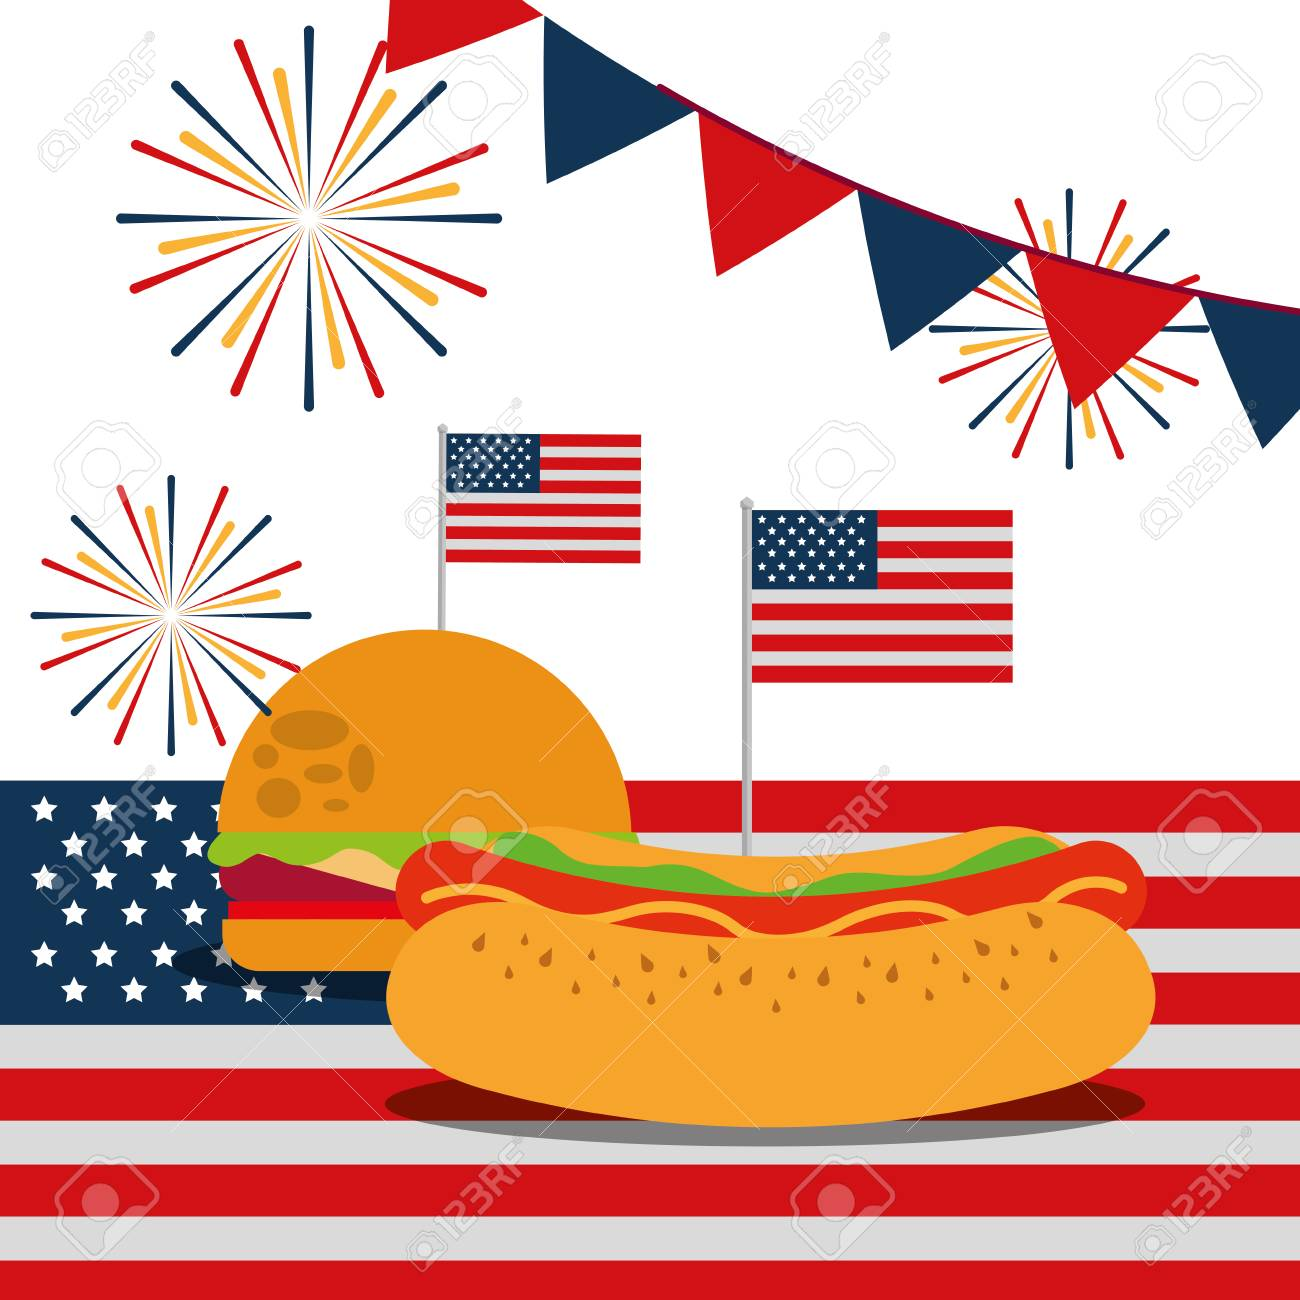 e90278682af food american independence day pennants usa flag fireworks hamburger hotdog  vector illustration Stock Vector - 102995714